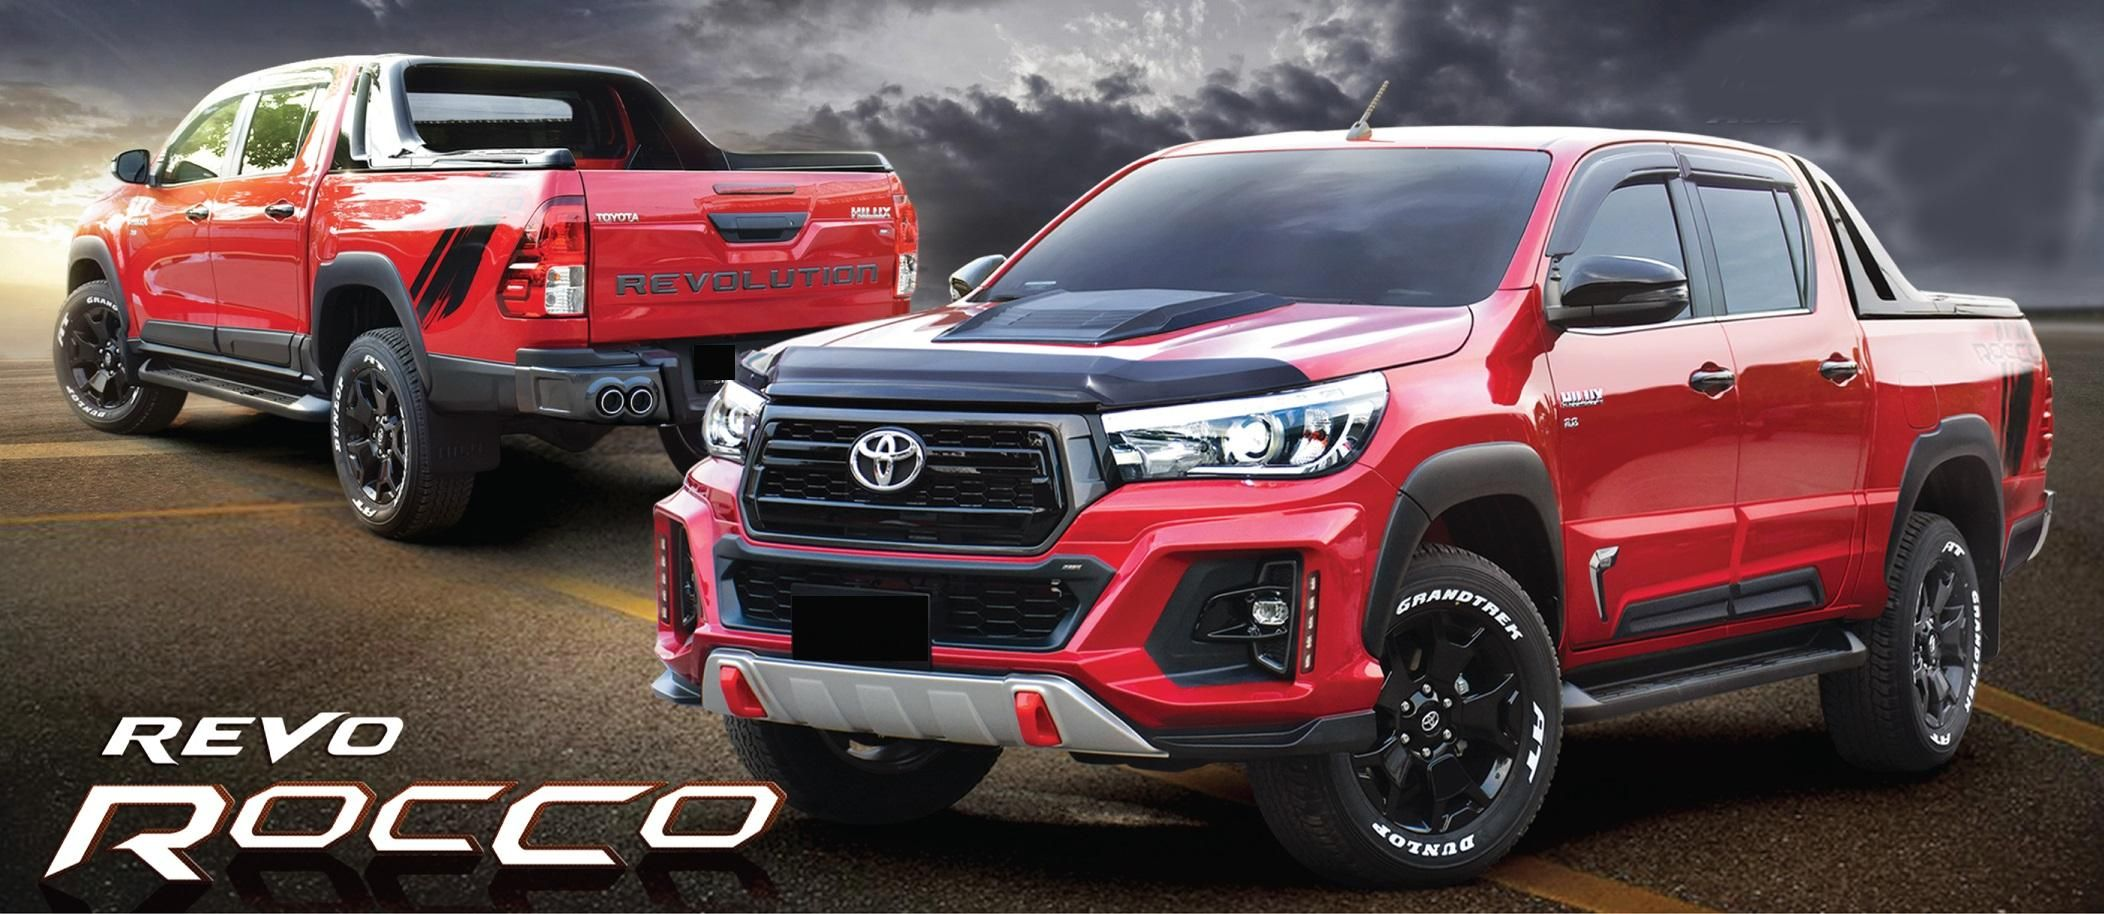 New Body kit For Toyota hilux Revo Rocco 2018 image 1 ...